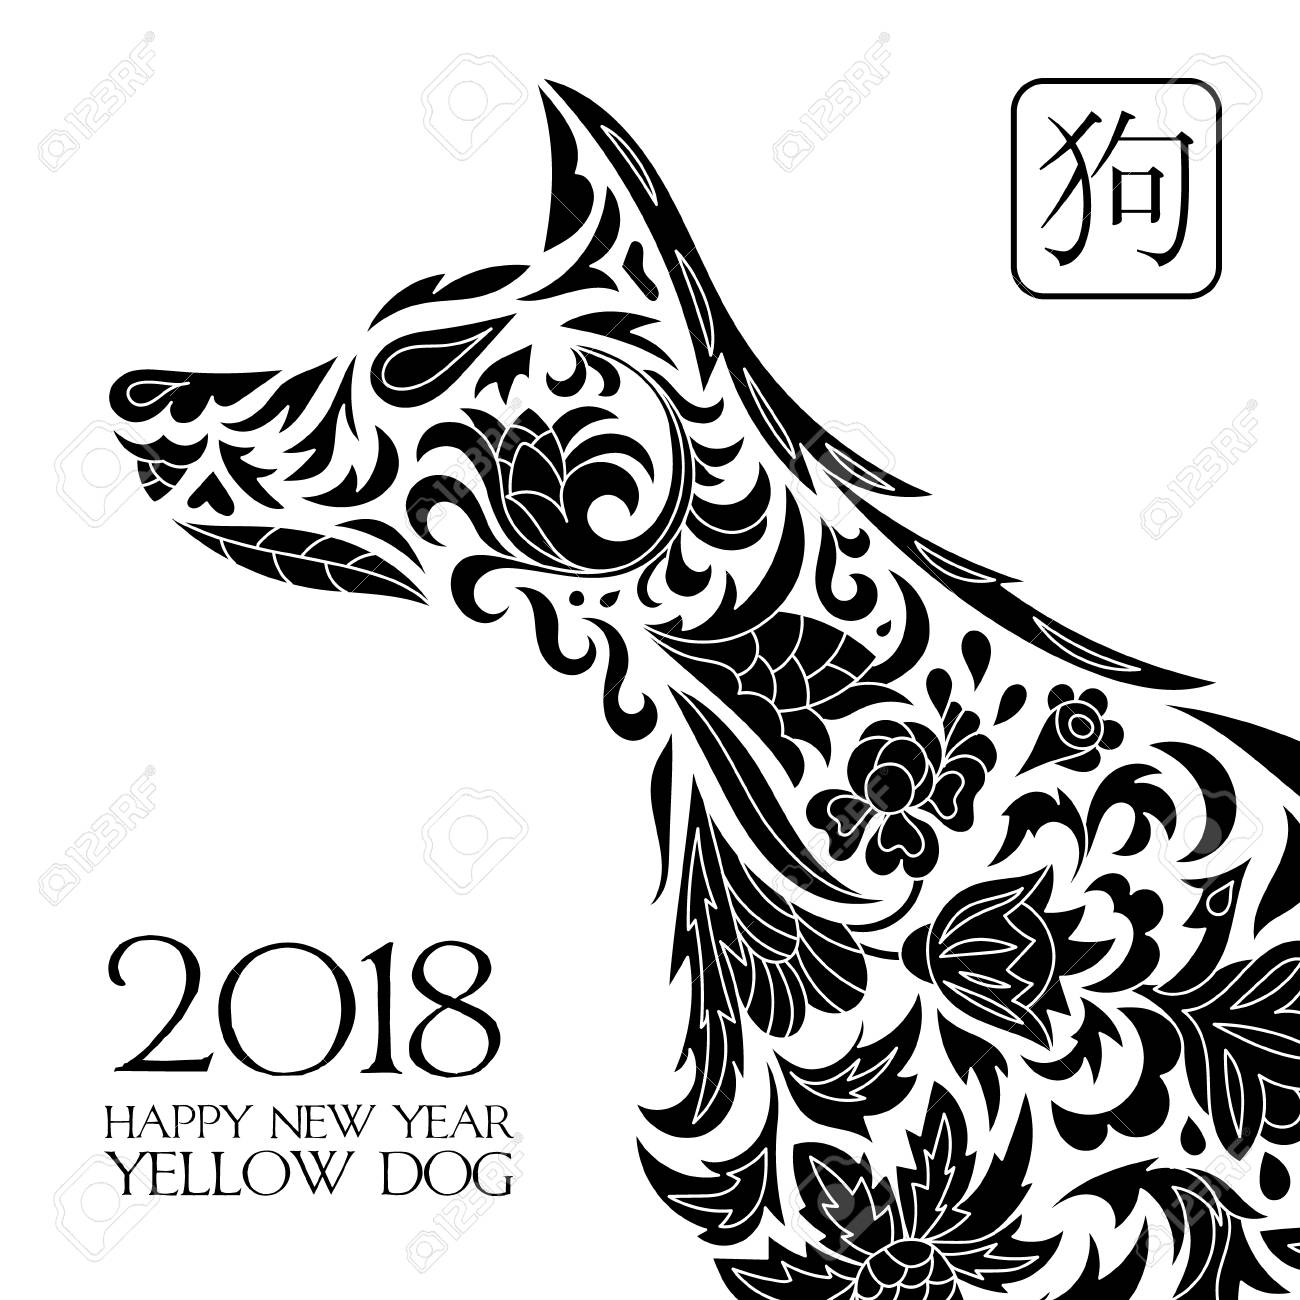 greeting chinese new year 2018 card with stylized dog on white background stock vector